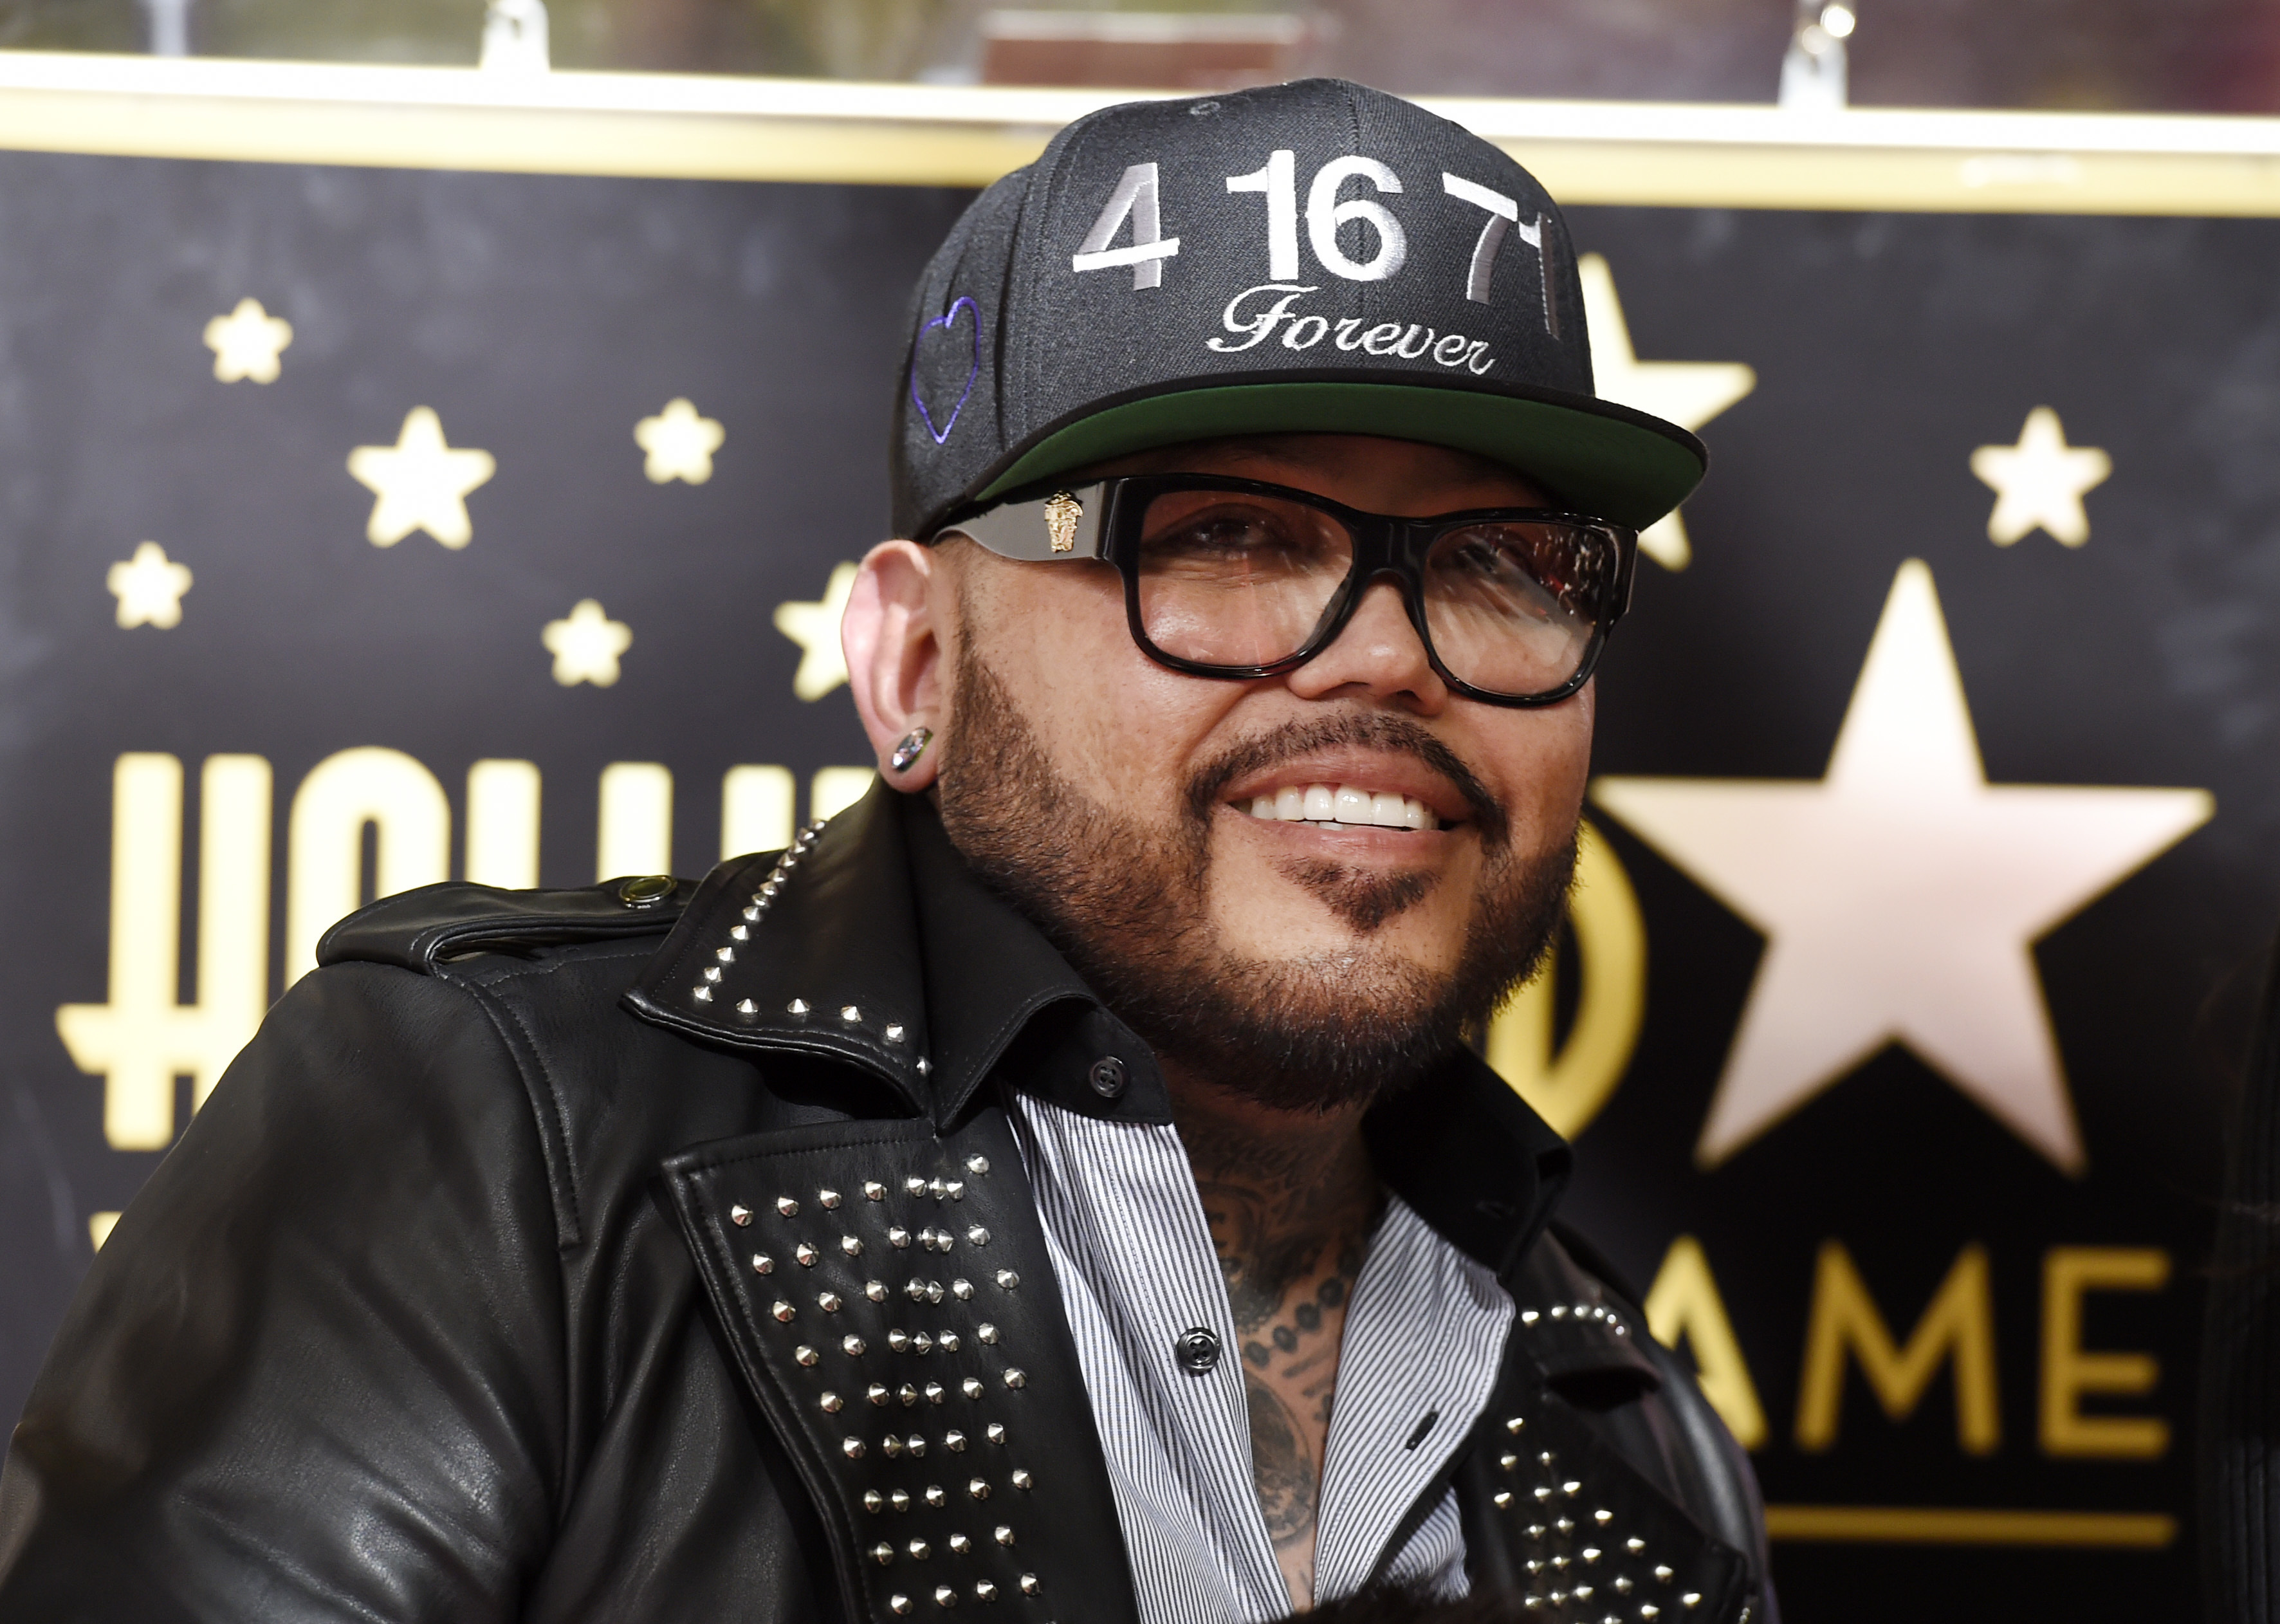 <div class='meta'><div class='origin-logo' data-origin='none'></div><span class='caption-text' data-credit='Chris Pizzello/Invision/AP'>A.B. Quintanilla III, brother of the late singer Selena Quintanilla, poses during a posthumous star ceremony for Selena on the Hollywood Walk of Fame.</span></div>